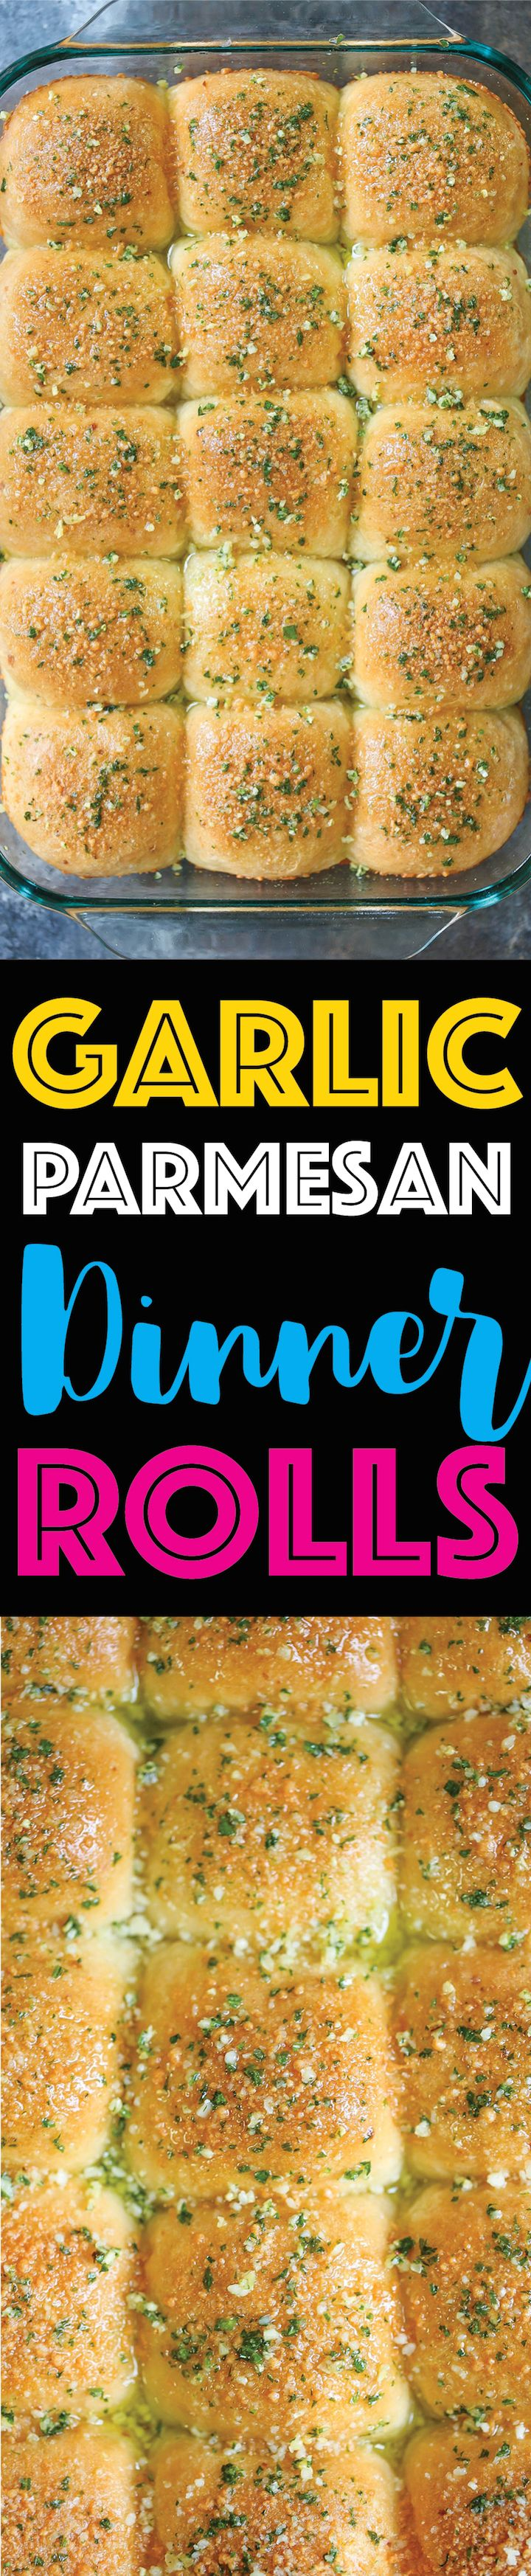 Garlic Parmesan Dinner Rolls - CLASSIC dinner rolls, except made even BETTER with garlic and grated Parmesan cheese! Soft, tender, warm, and buttery!!!